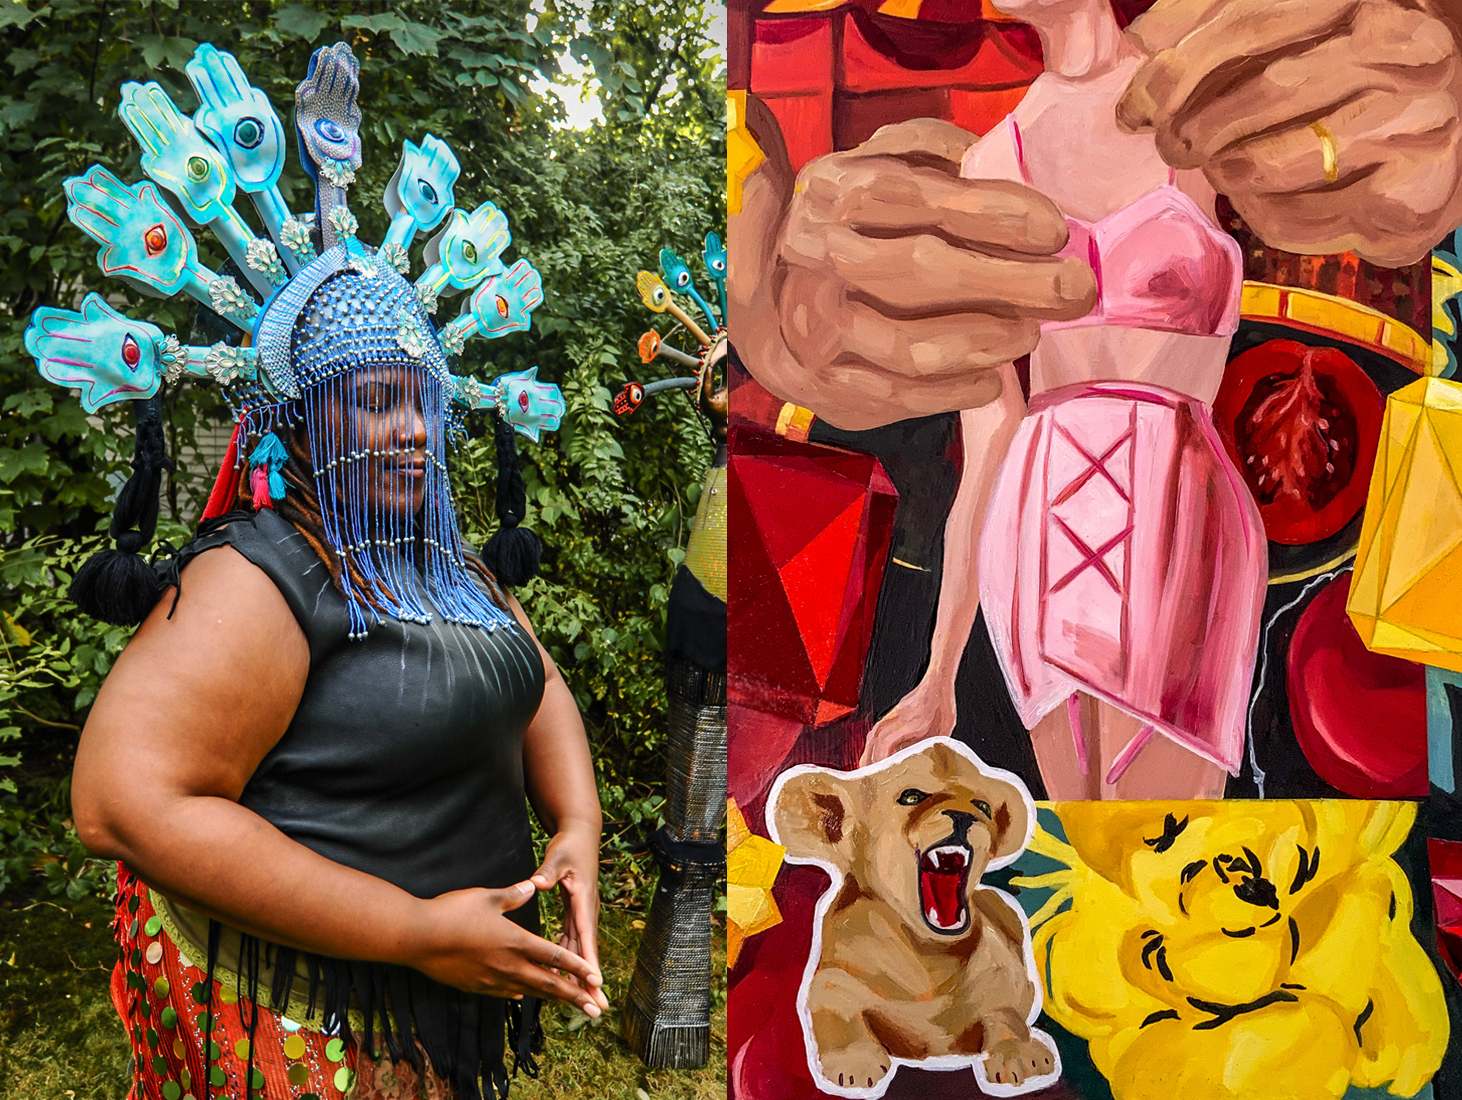 "(Left): Christine Hajjar, MFA'20, Archemedes Embodiment, performance still (detail) featuring Gloria Hood, 2019, upcycled metals, glass, plastics, and textiles, 76 x 58 x 32"" (Right): Cynthia Zeman, MFA'20, Baby Lion (detail), 2019, oils, 48 x 36"""